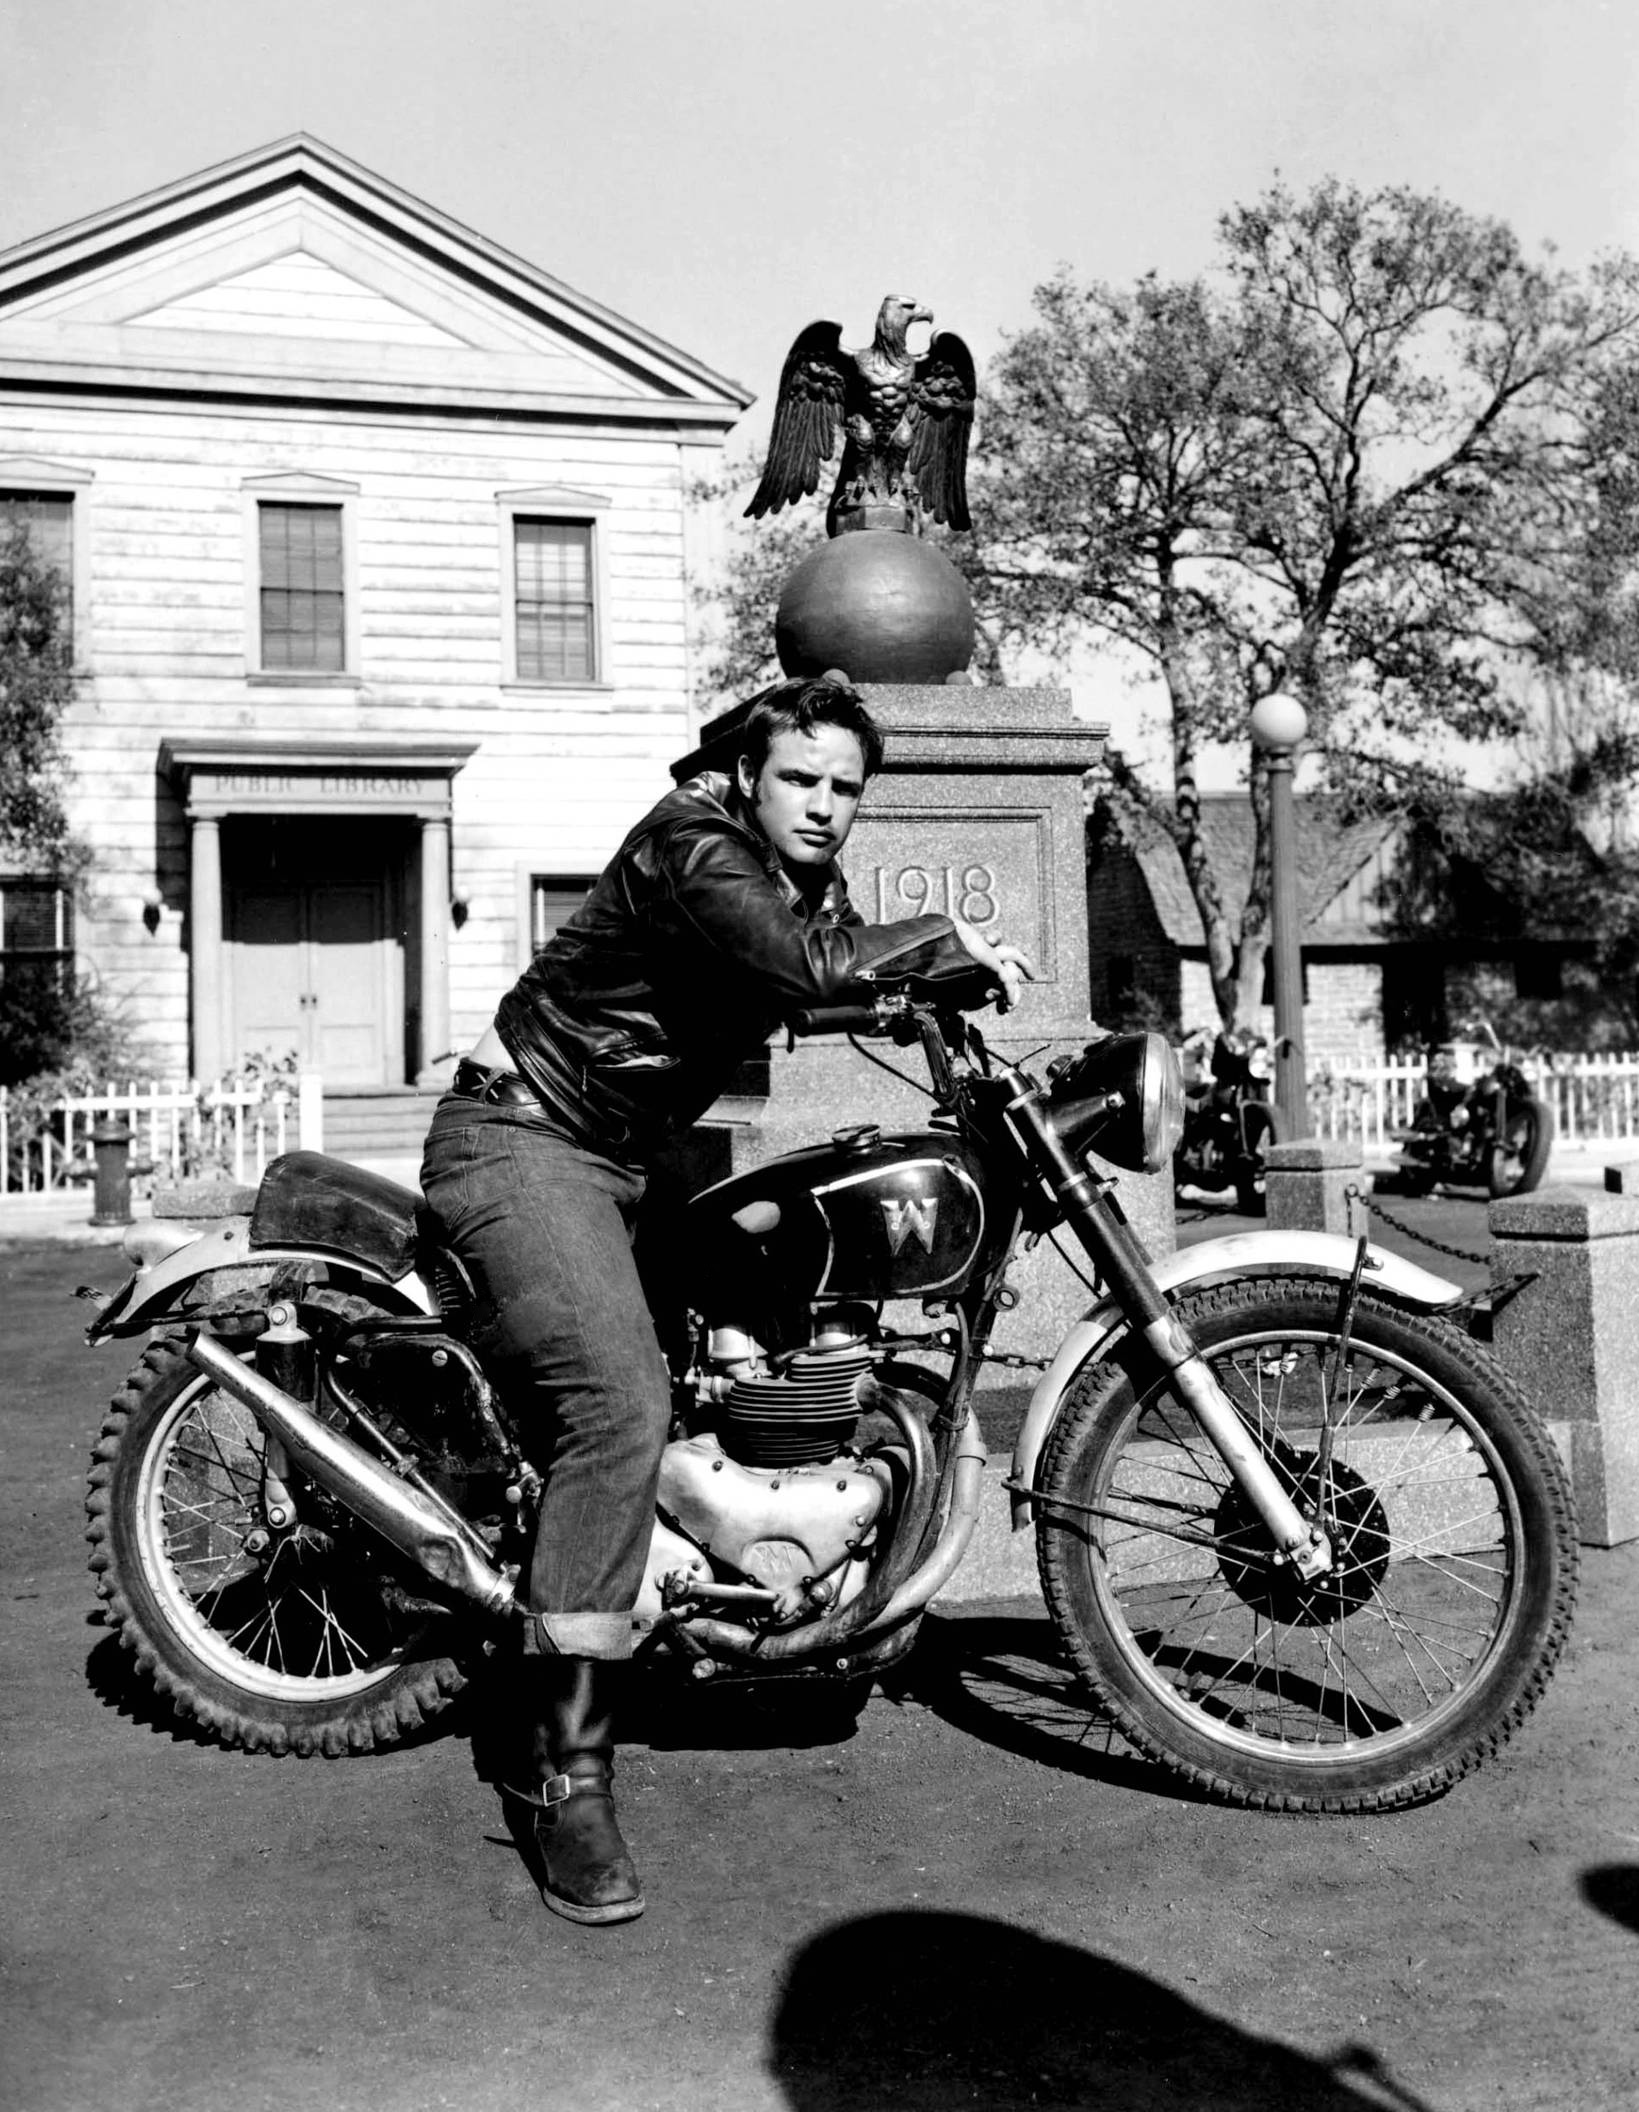 Marlon Brando The Wild One Matchless motorcycle